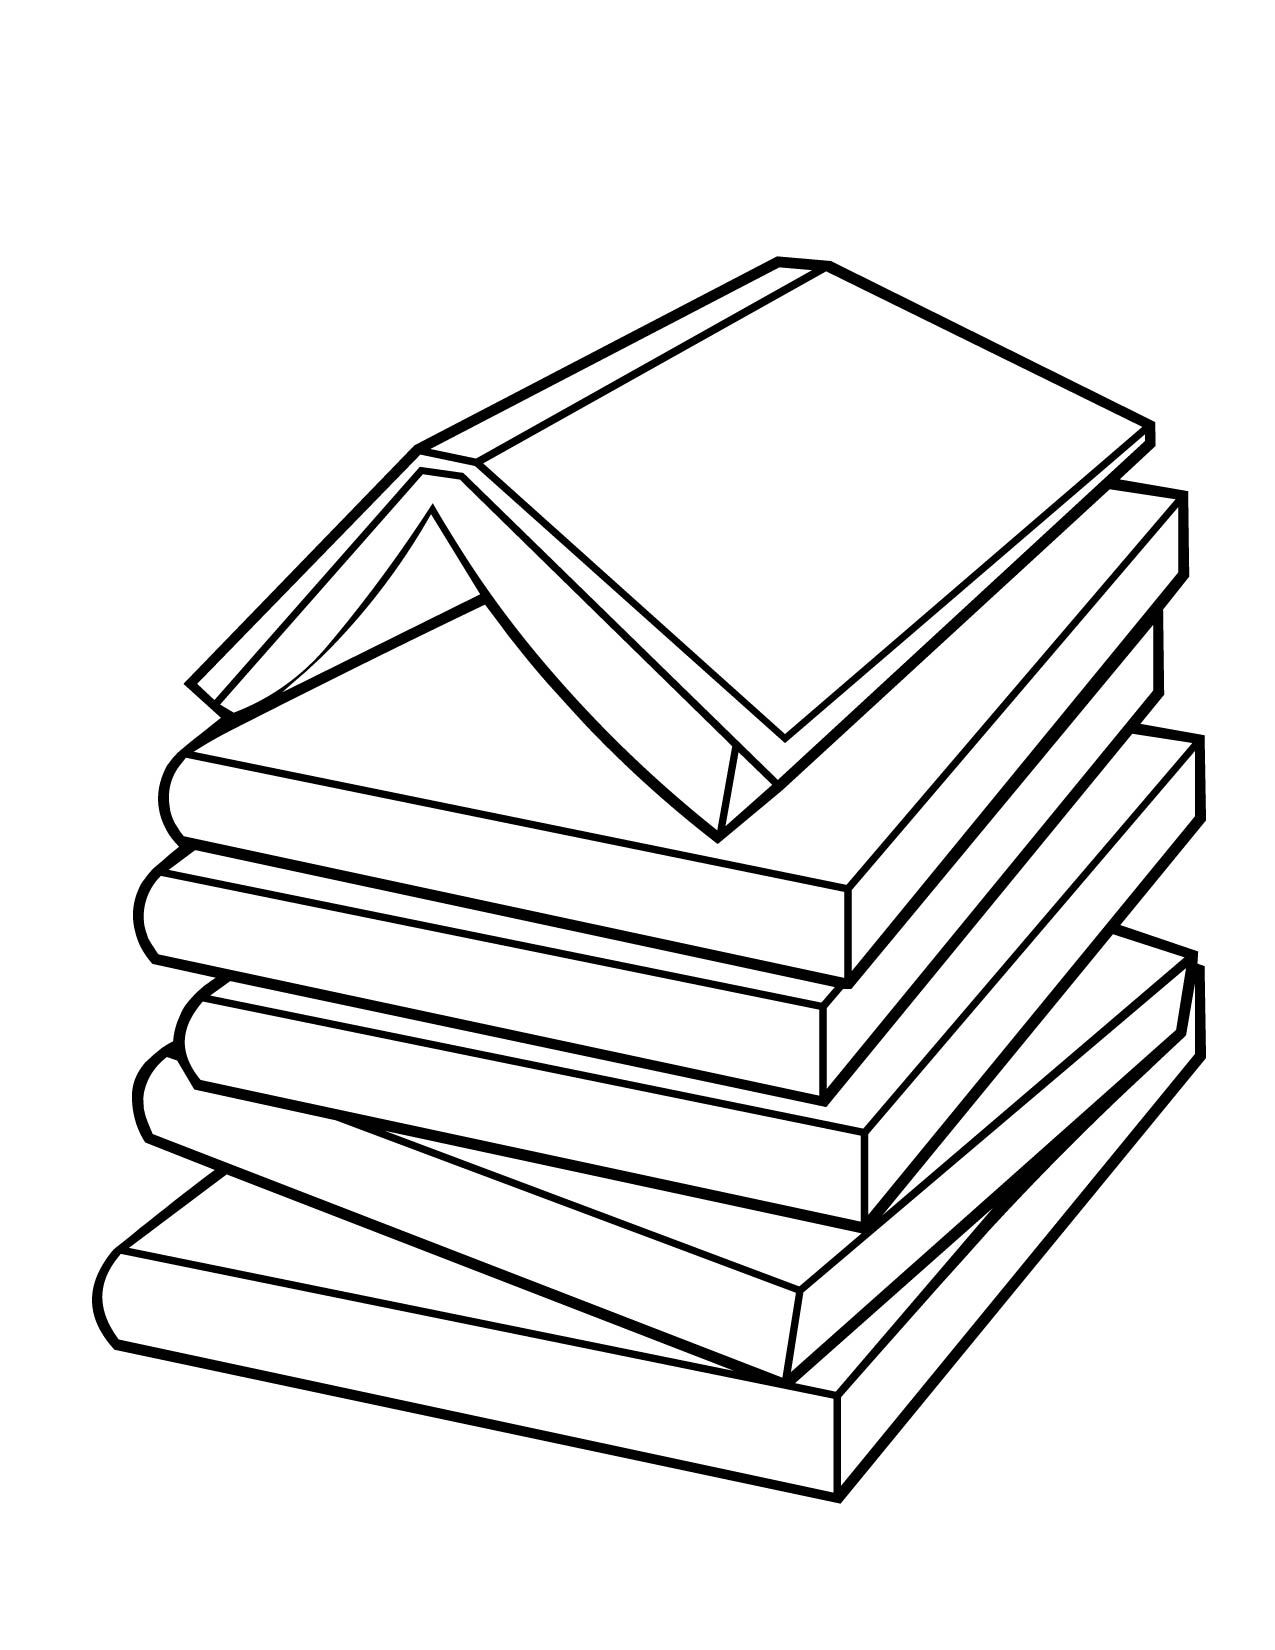 Nice Coloring Page Book Free Download Dog Coloring Book Coloring Books Toddler Coloring Book